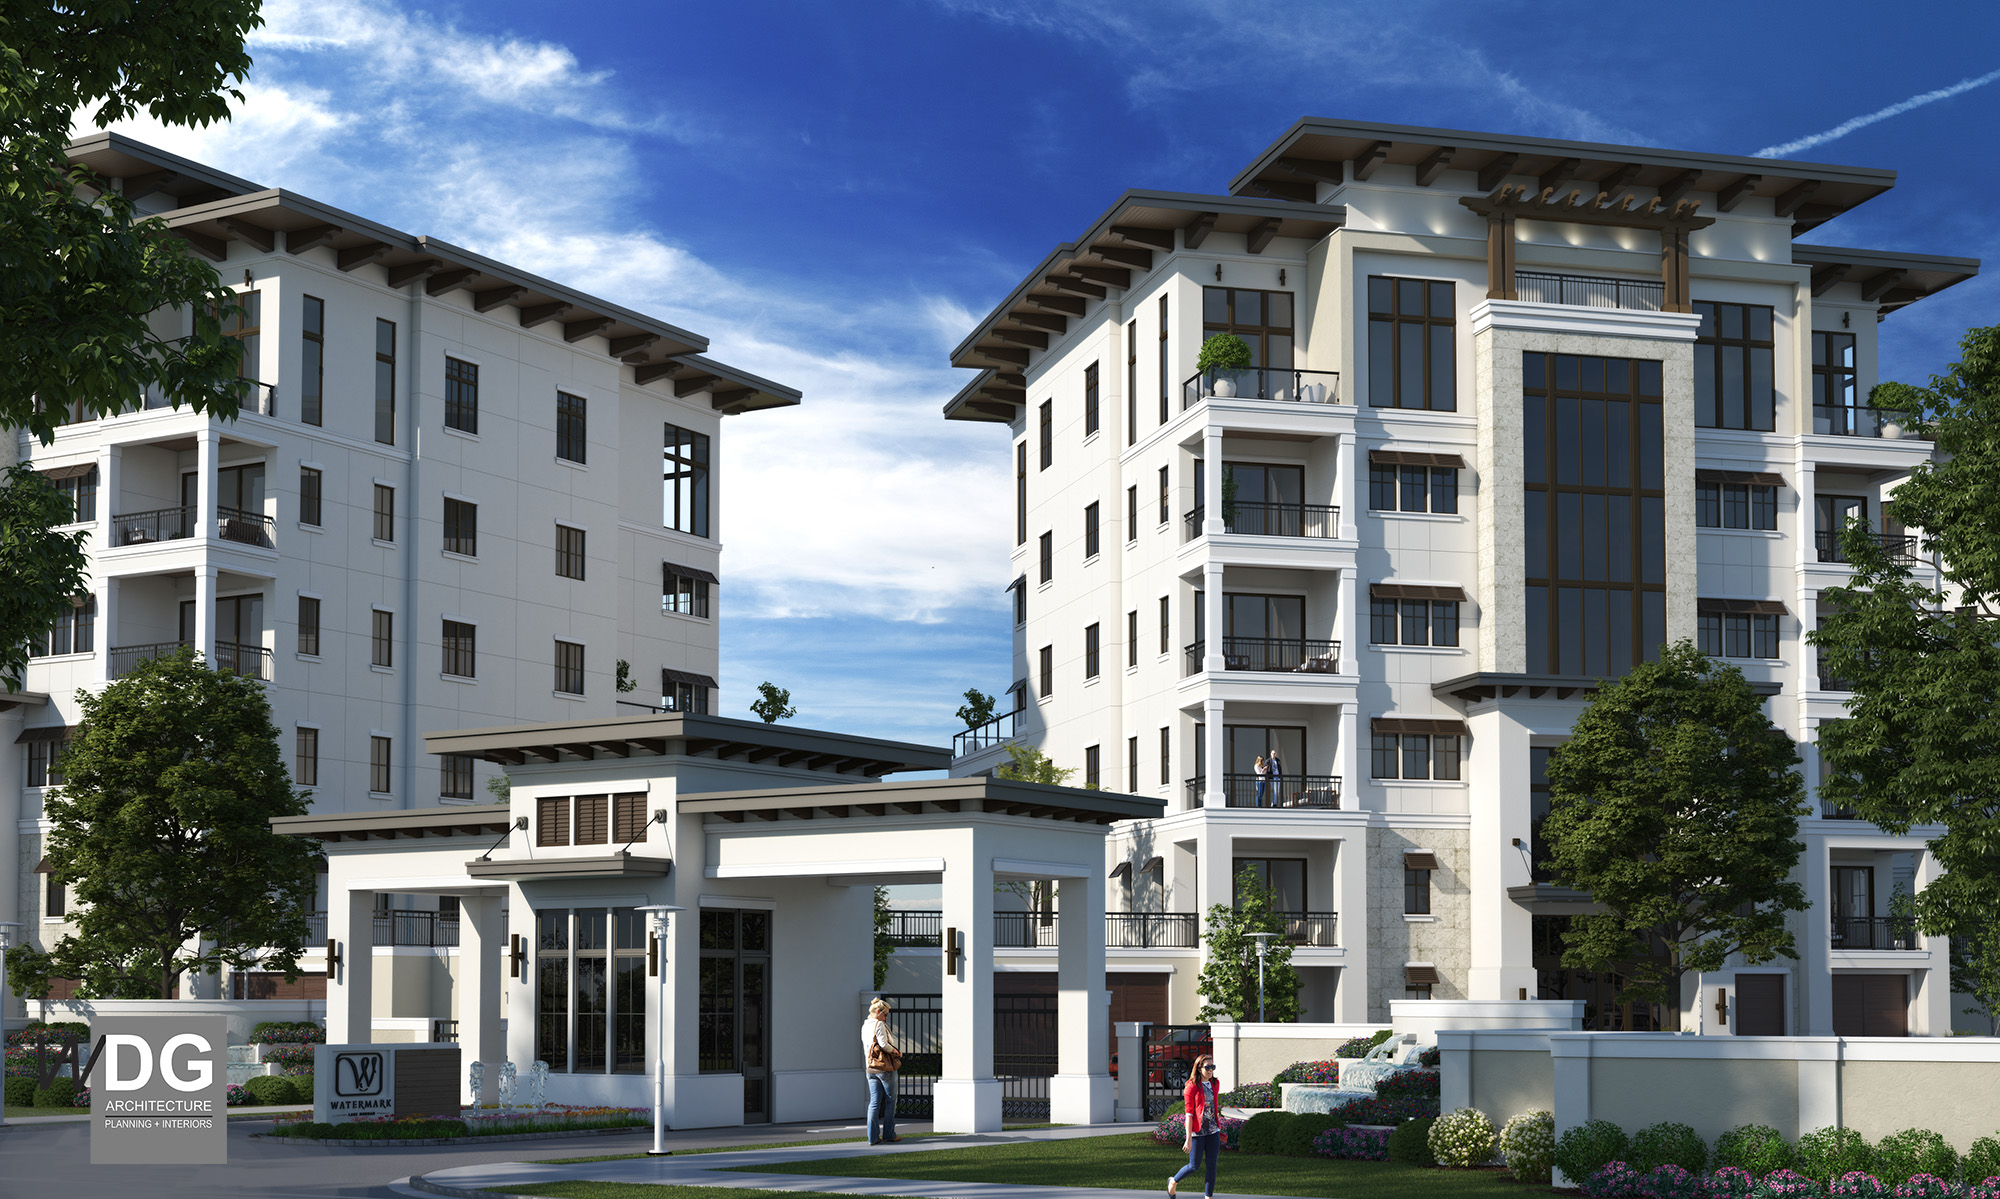 02 Watermark-02multifamily architecture